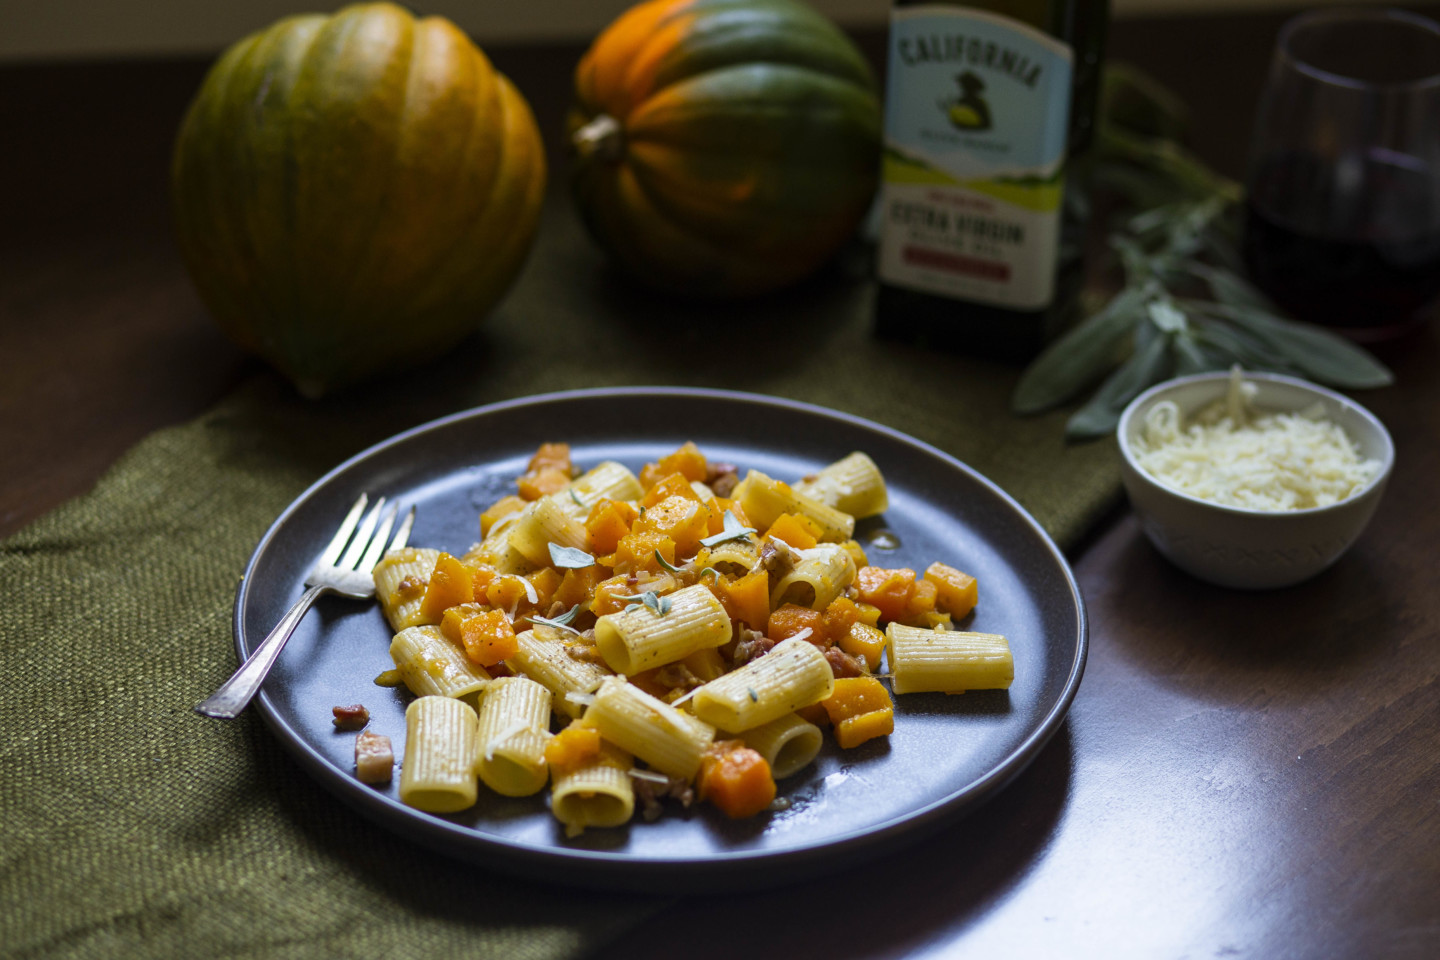 Rigatoni with Pancetta, Pumpkin, and Sage. In the background there are two squash, a bottle of extra virgin olive oil, sage, and parmesan cheese.